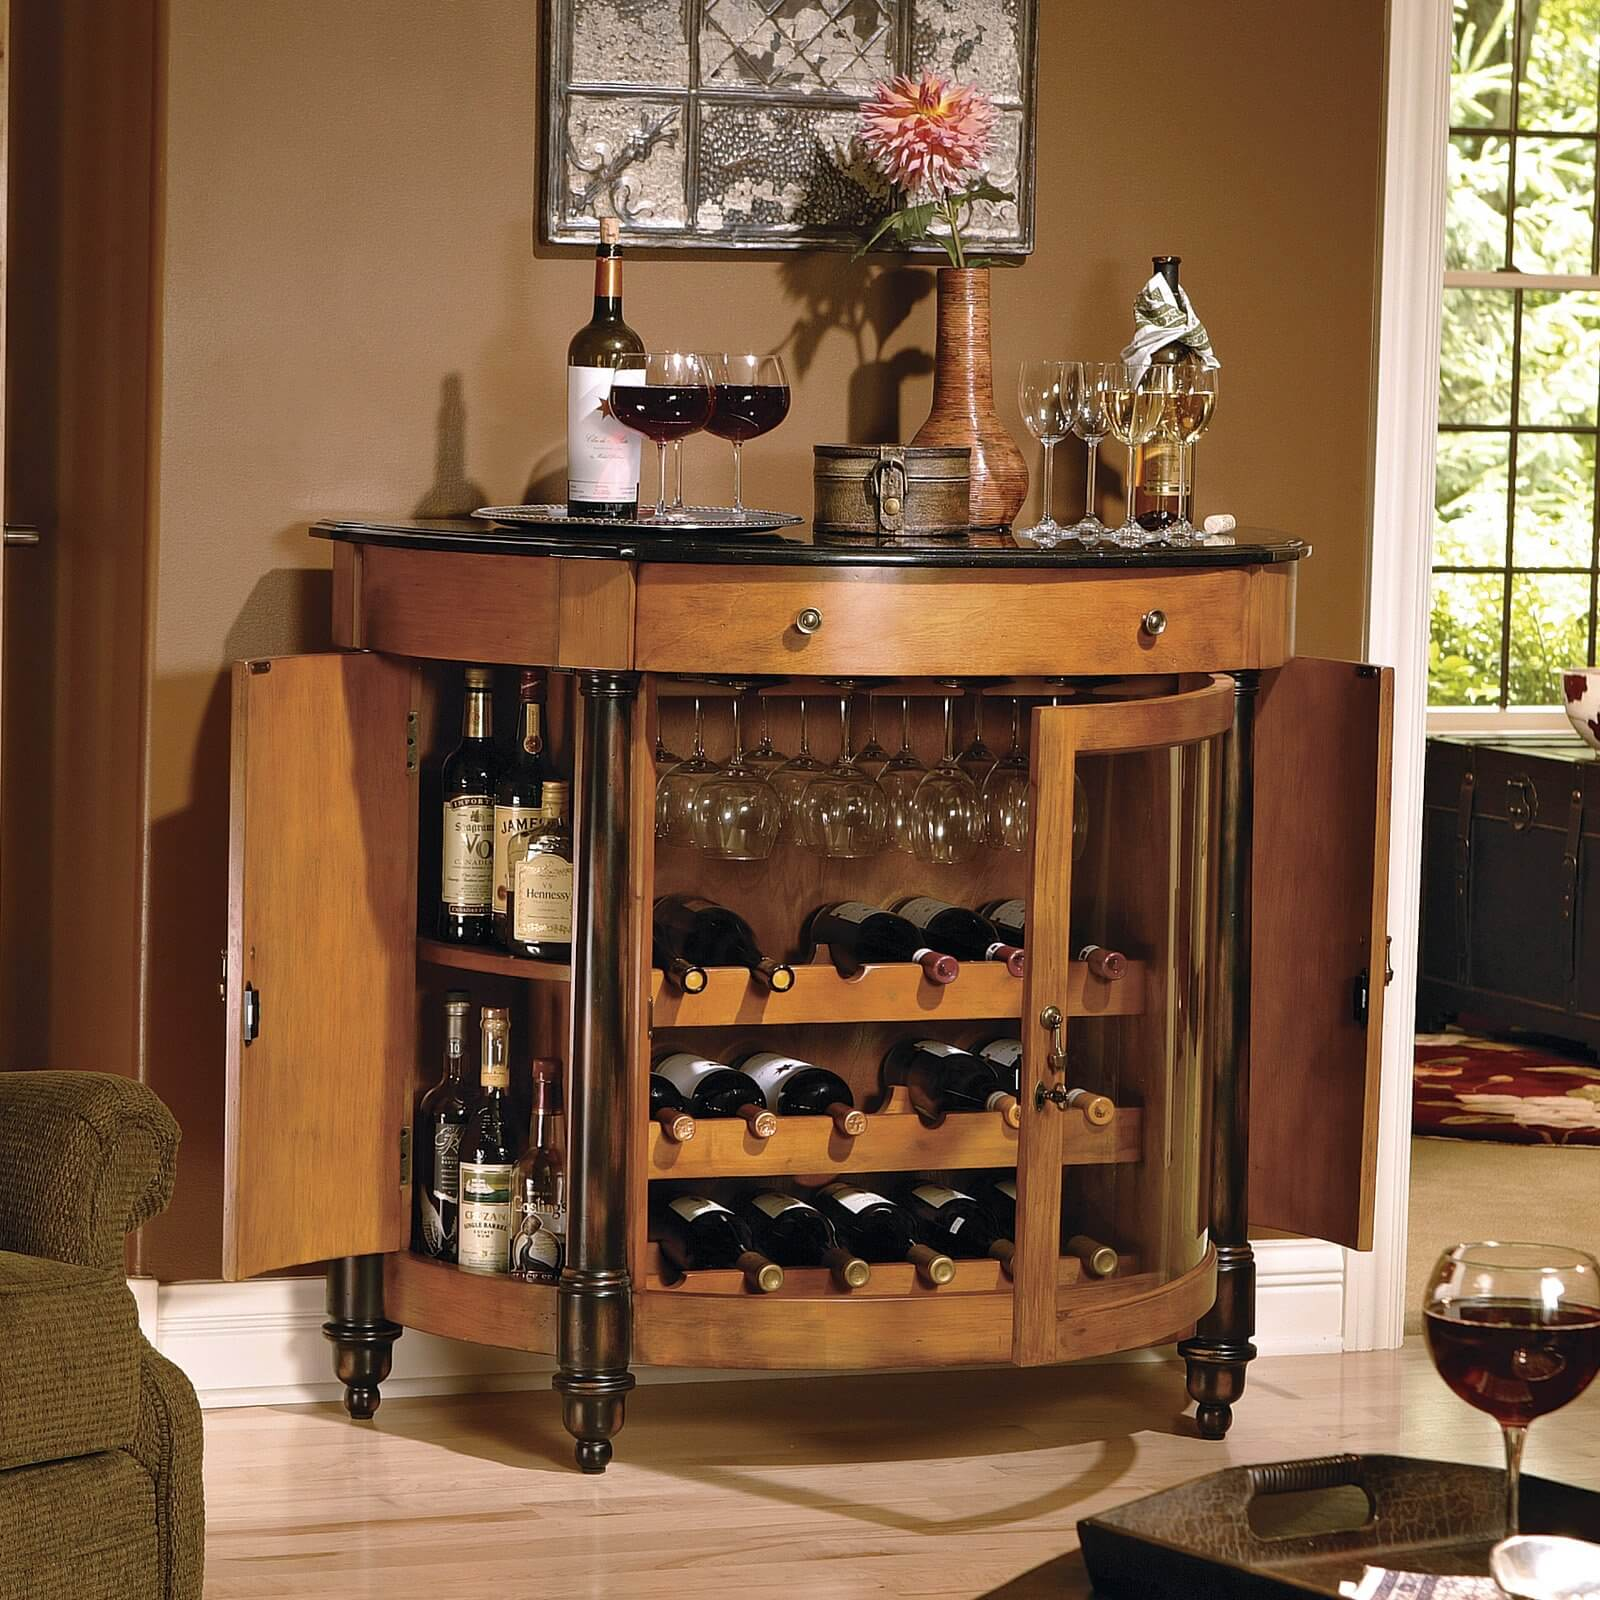 Here S A Home Bar For Wine Lovers With It S 18 Bottle Wine